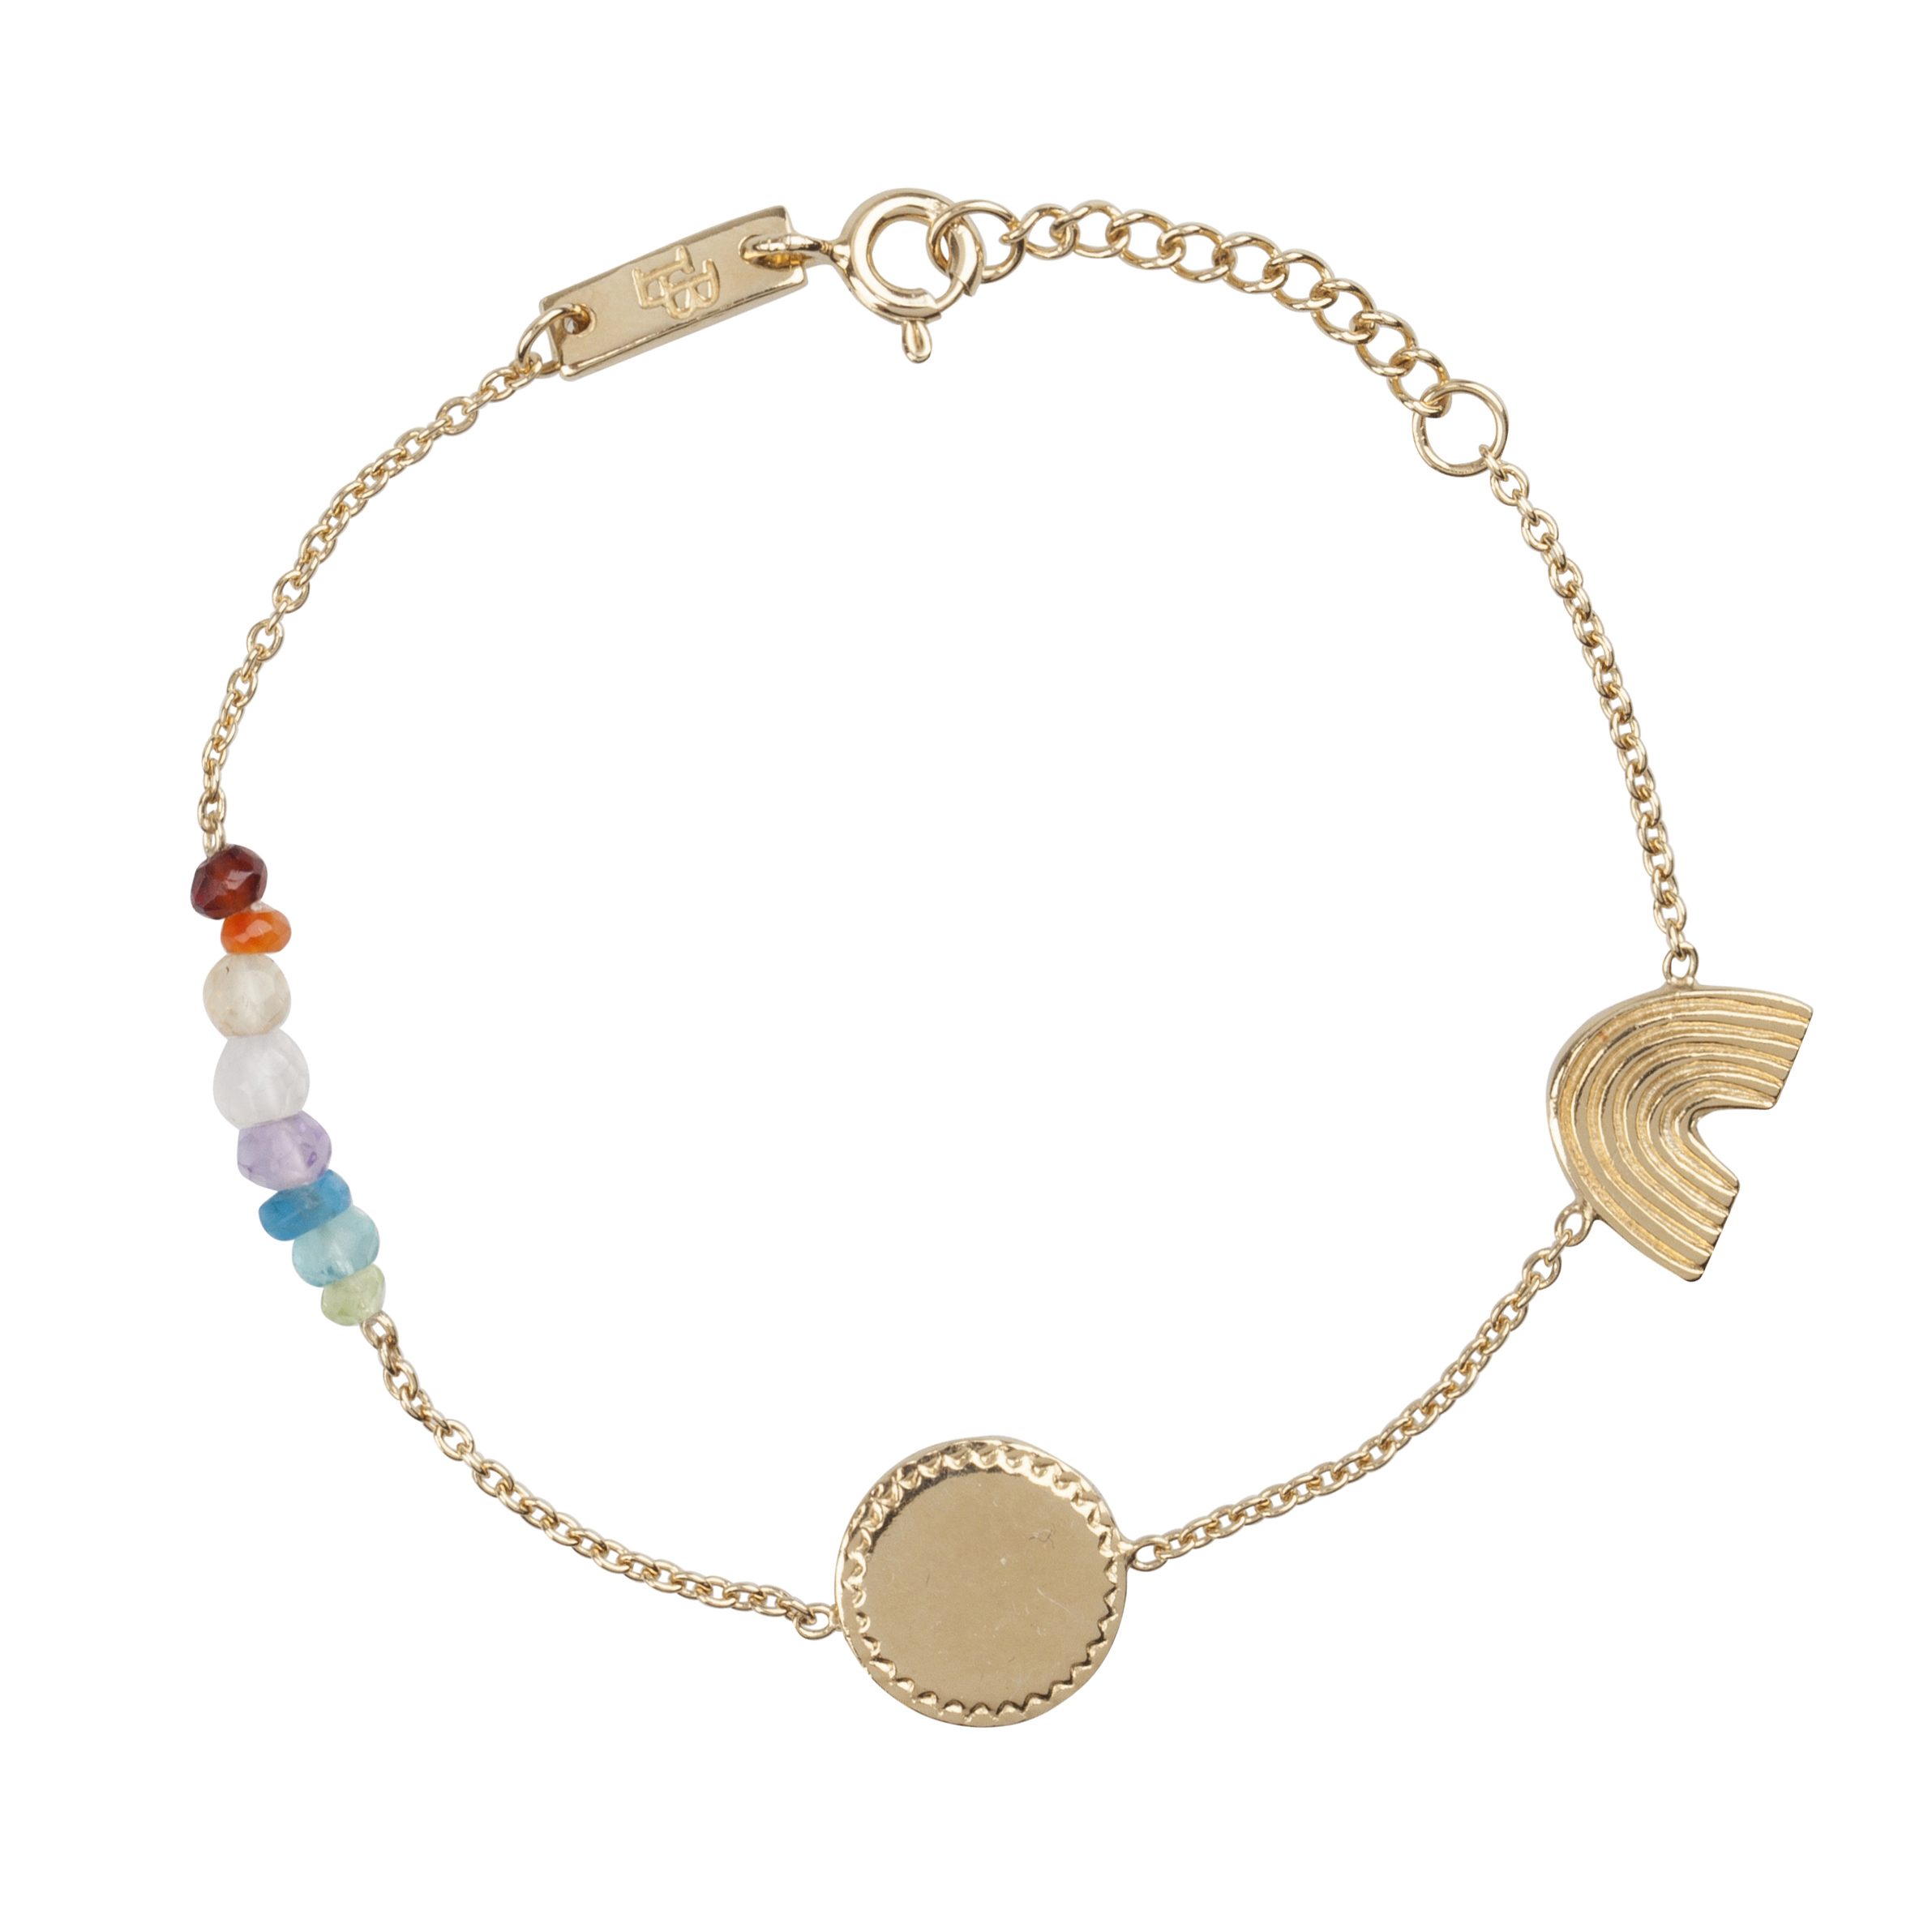 Lennebelle She Is A Rainbow Giftset - Gold-Plated jC8XLMGC